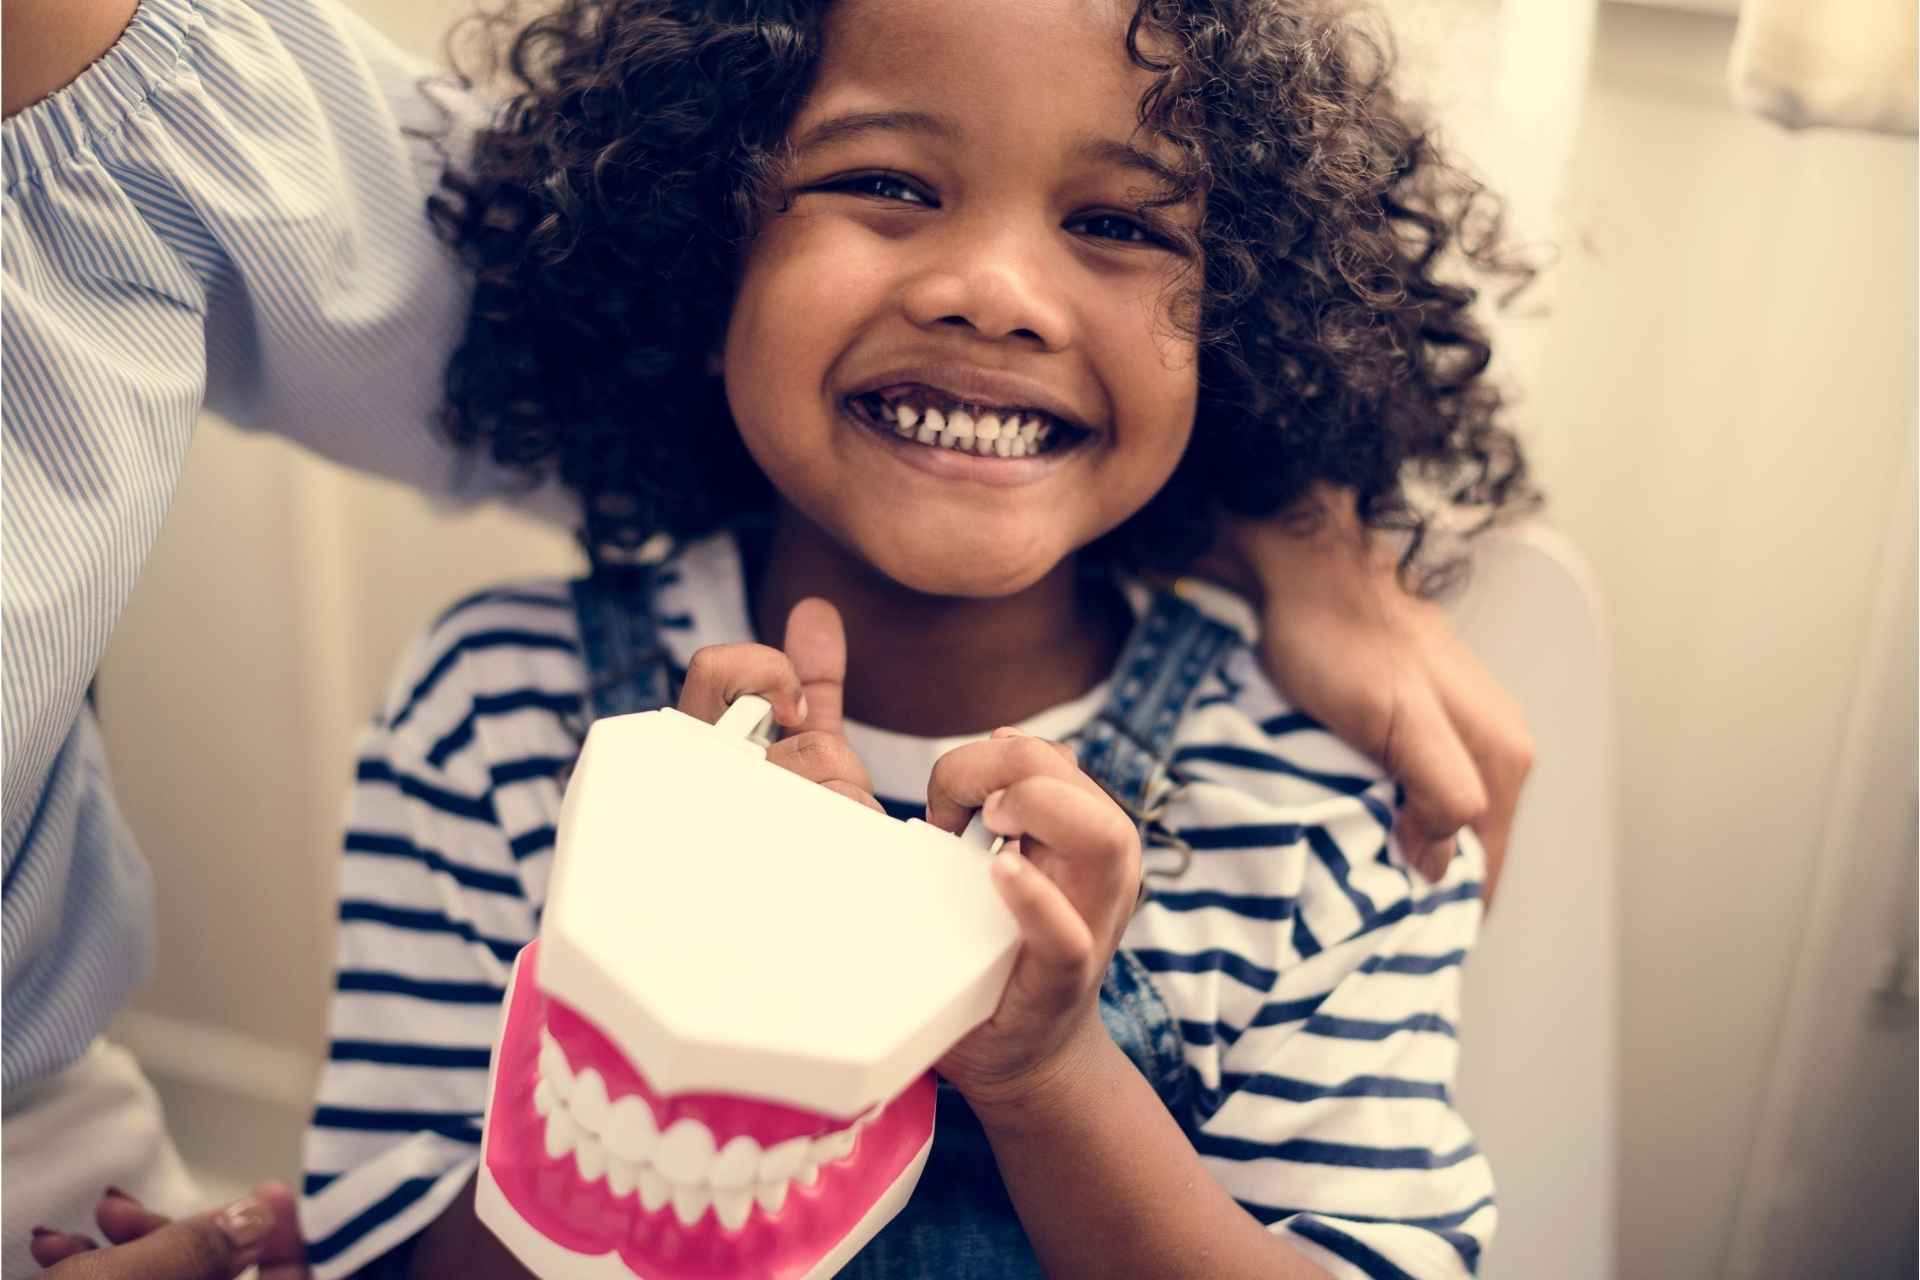 Little girl holding dentures